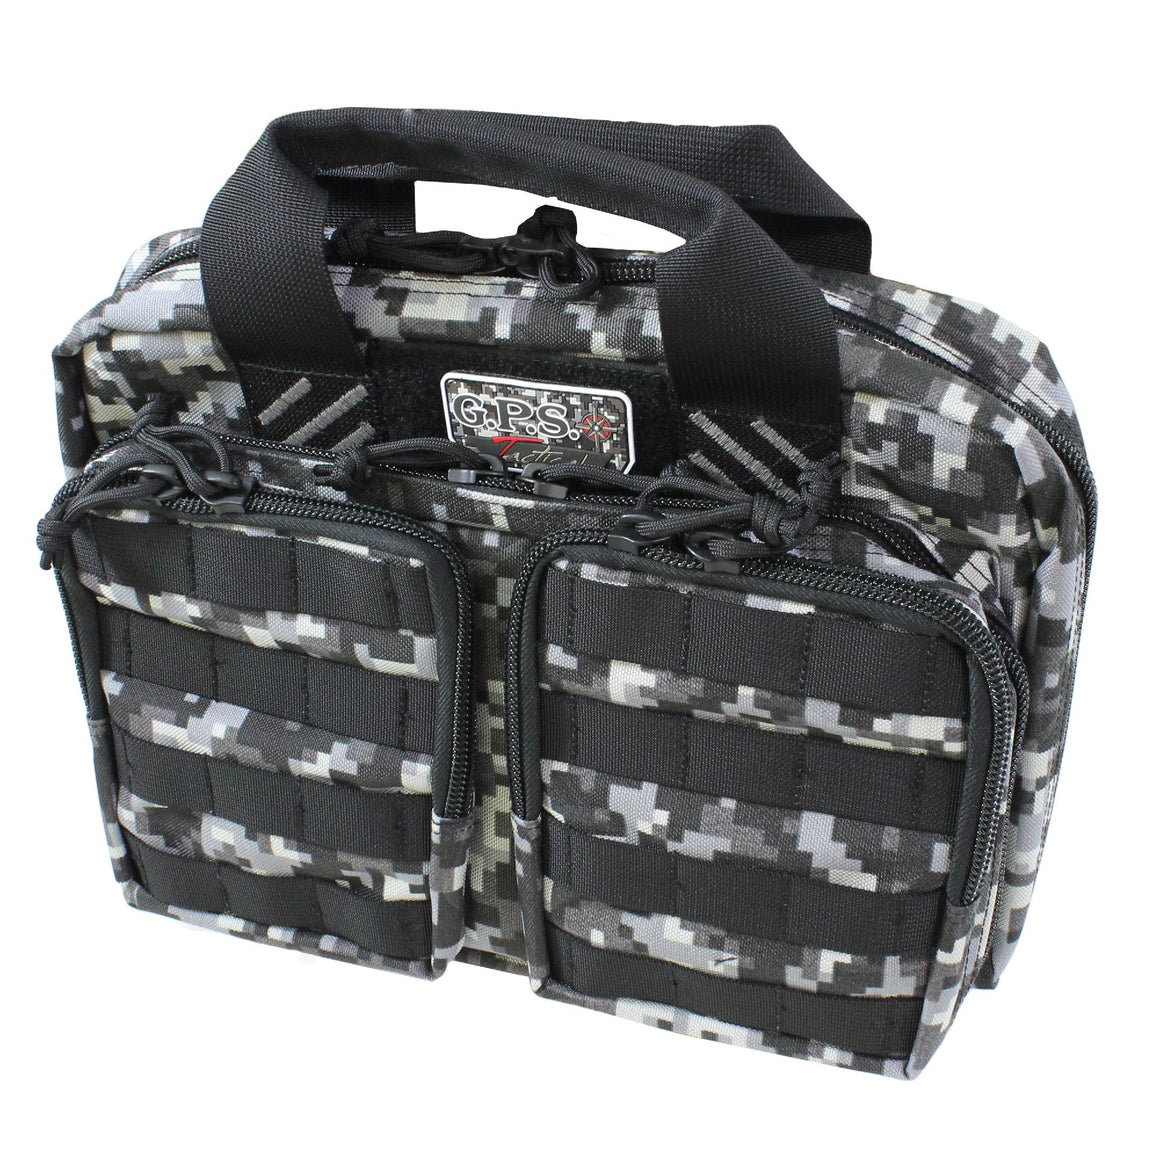 Range Bag - Tactical Quad and 2 Pistol